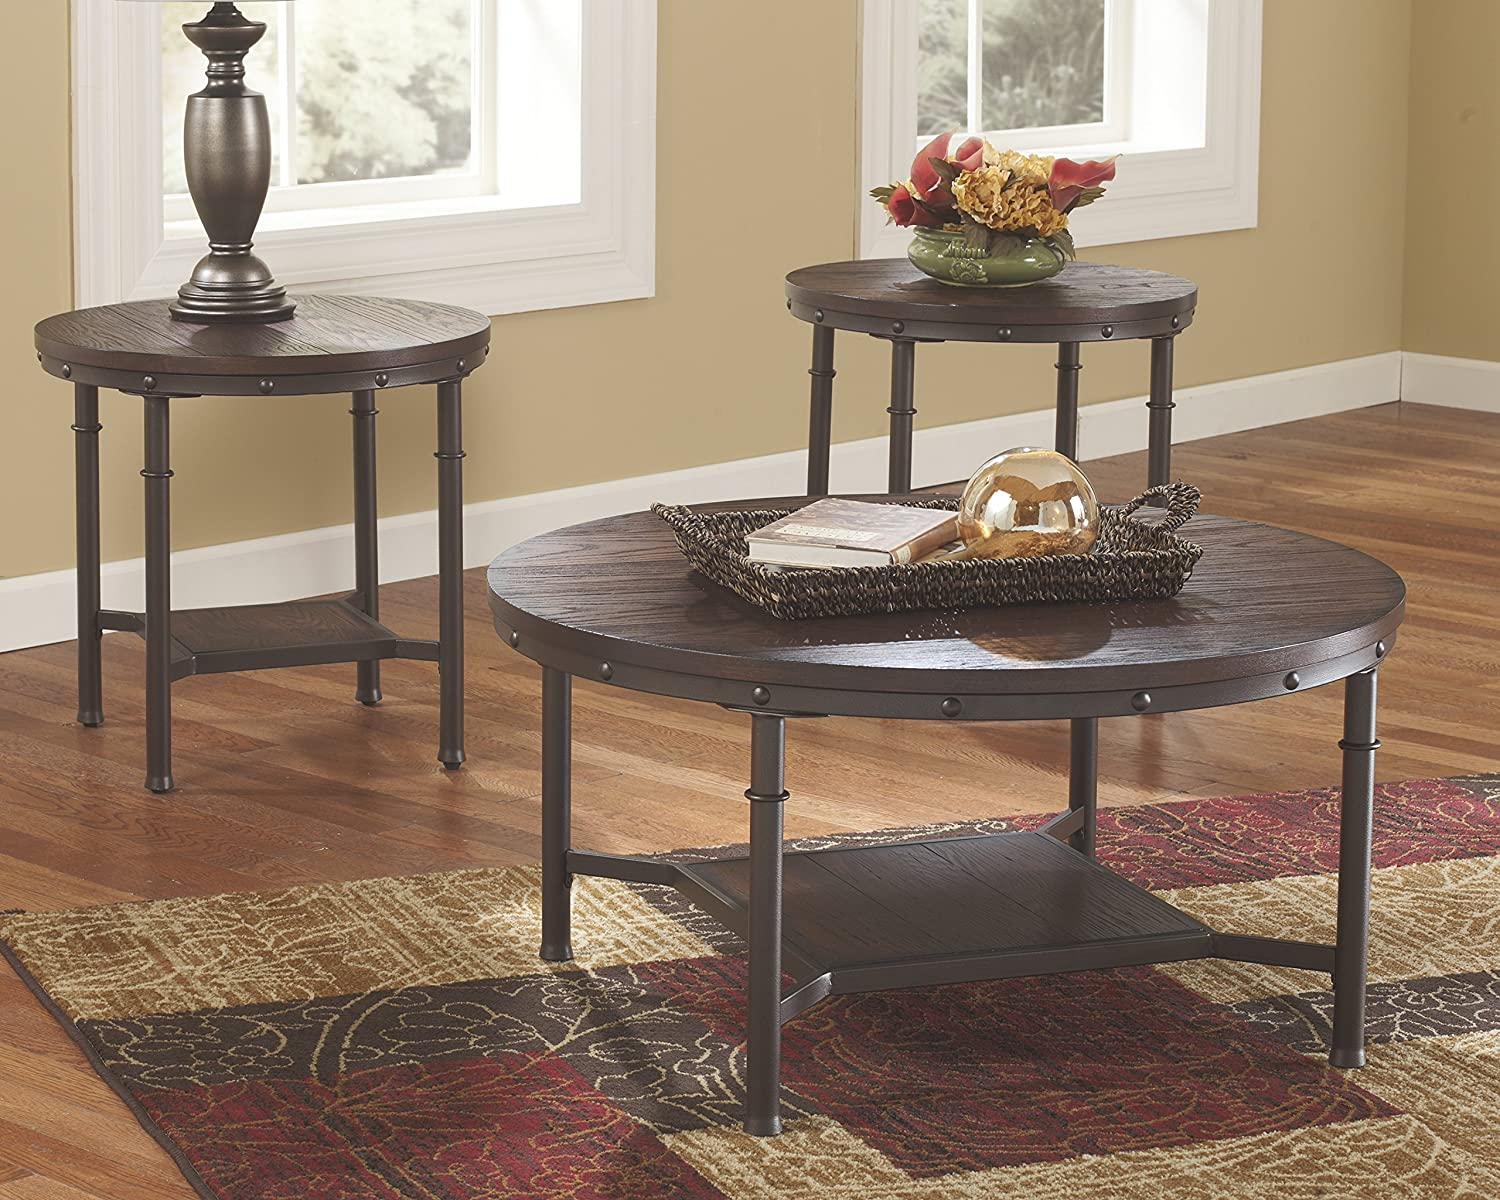 Amazon ashley furniture signature design sandling amazon ashley furniture signature design sandling occasional table set end tables and coffee table 3 piece round rustic brown kitchen geotapseo Gallery